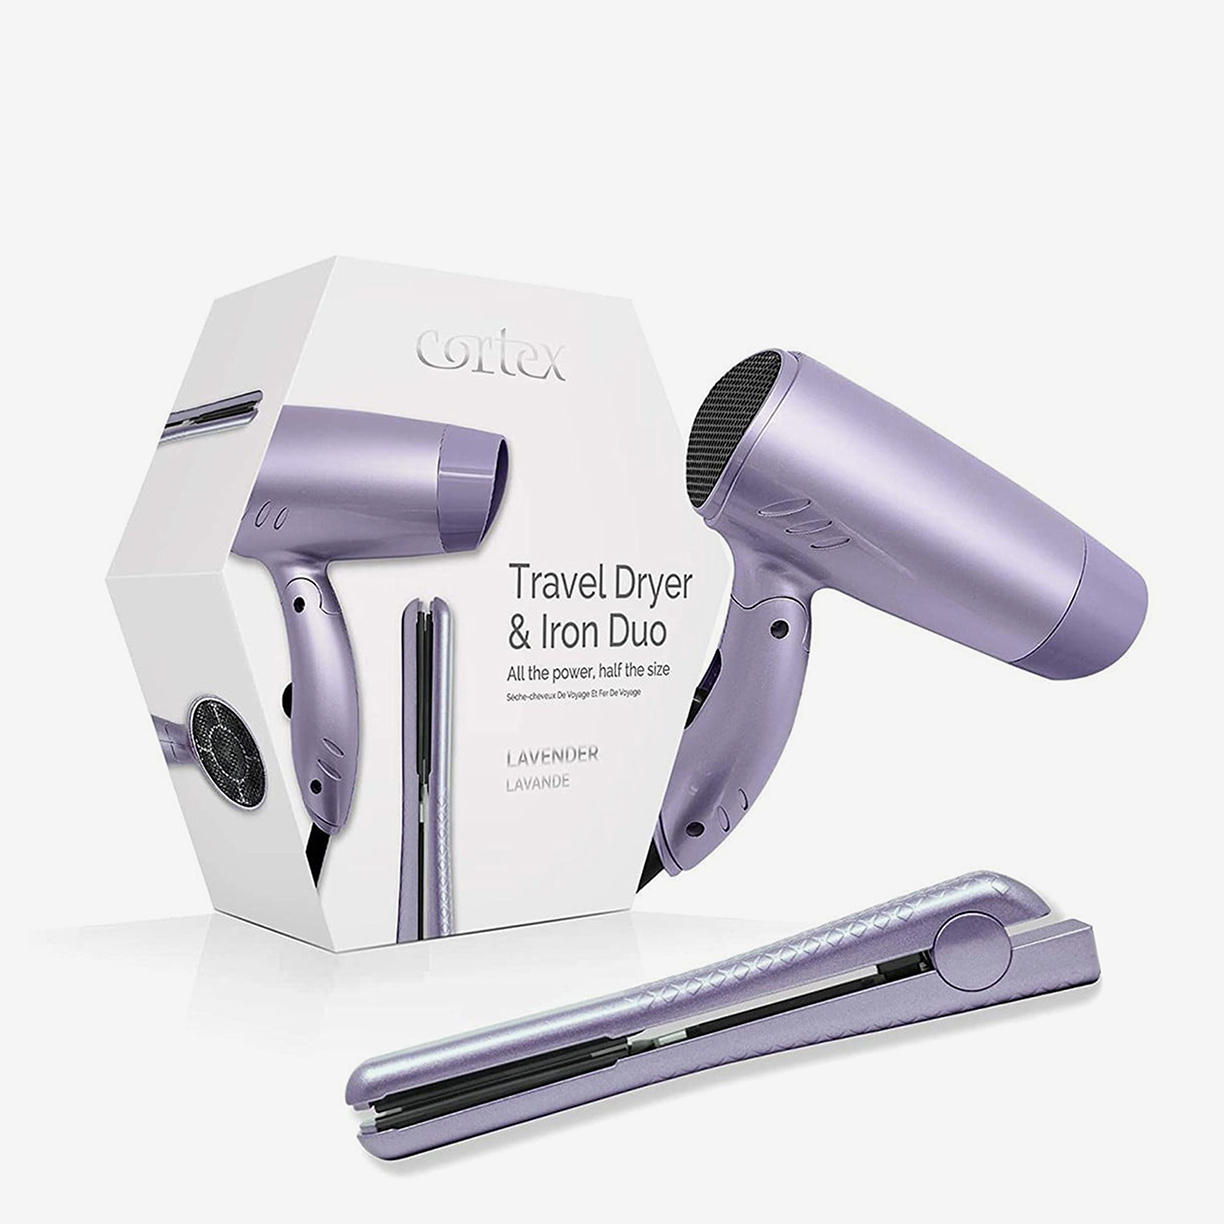 New Curling Wands, Flat Irons & More Up to 60% Off